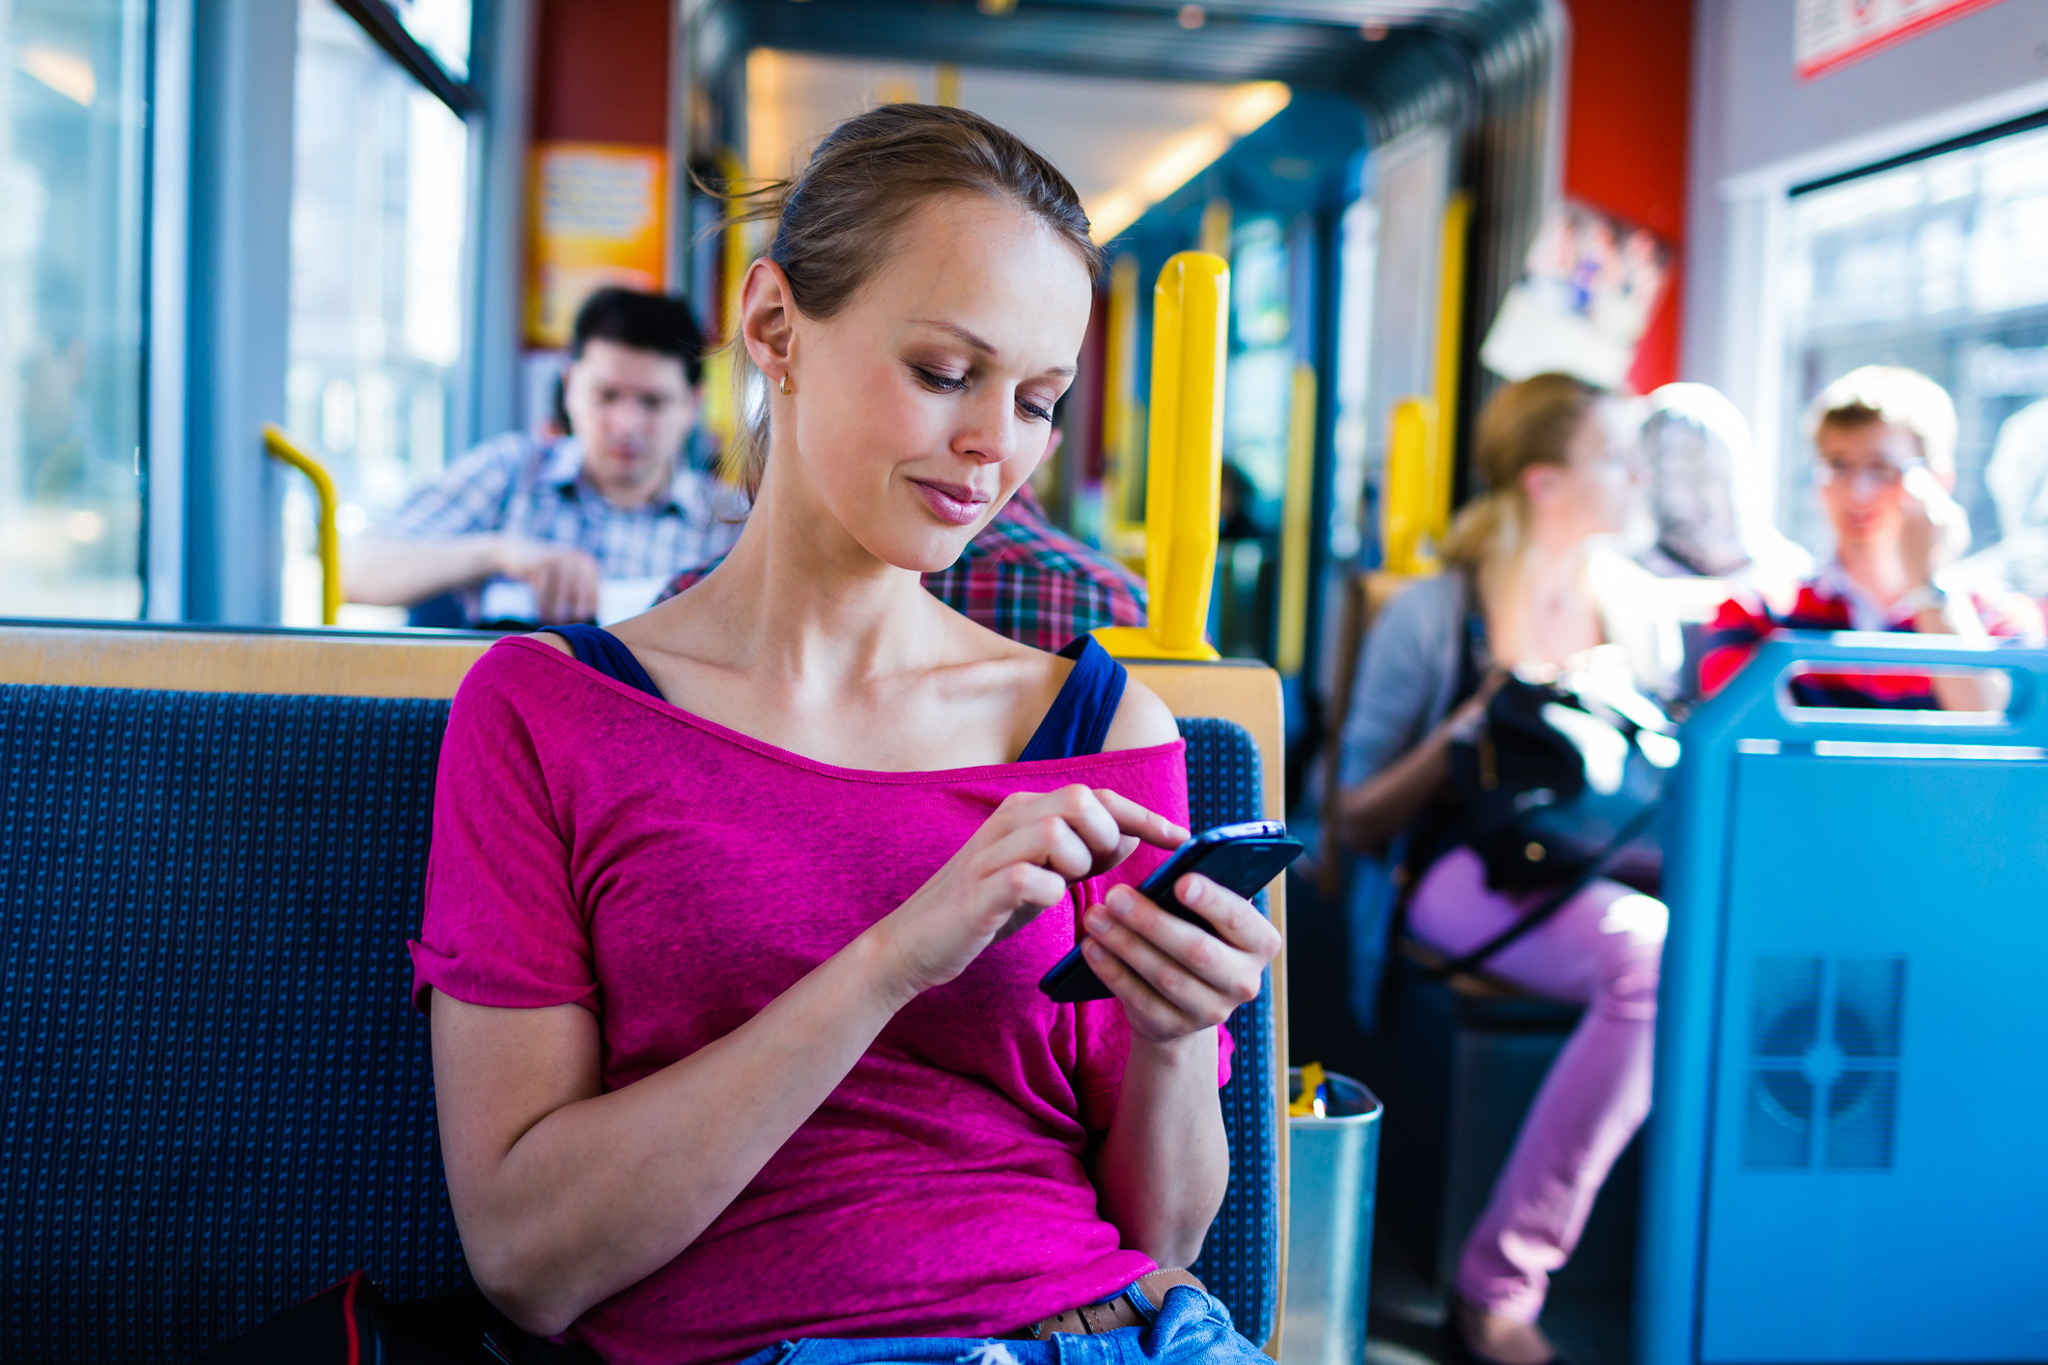 Young woman using a smartphone on a tram